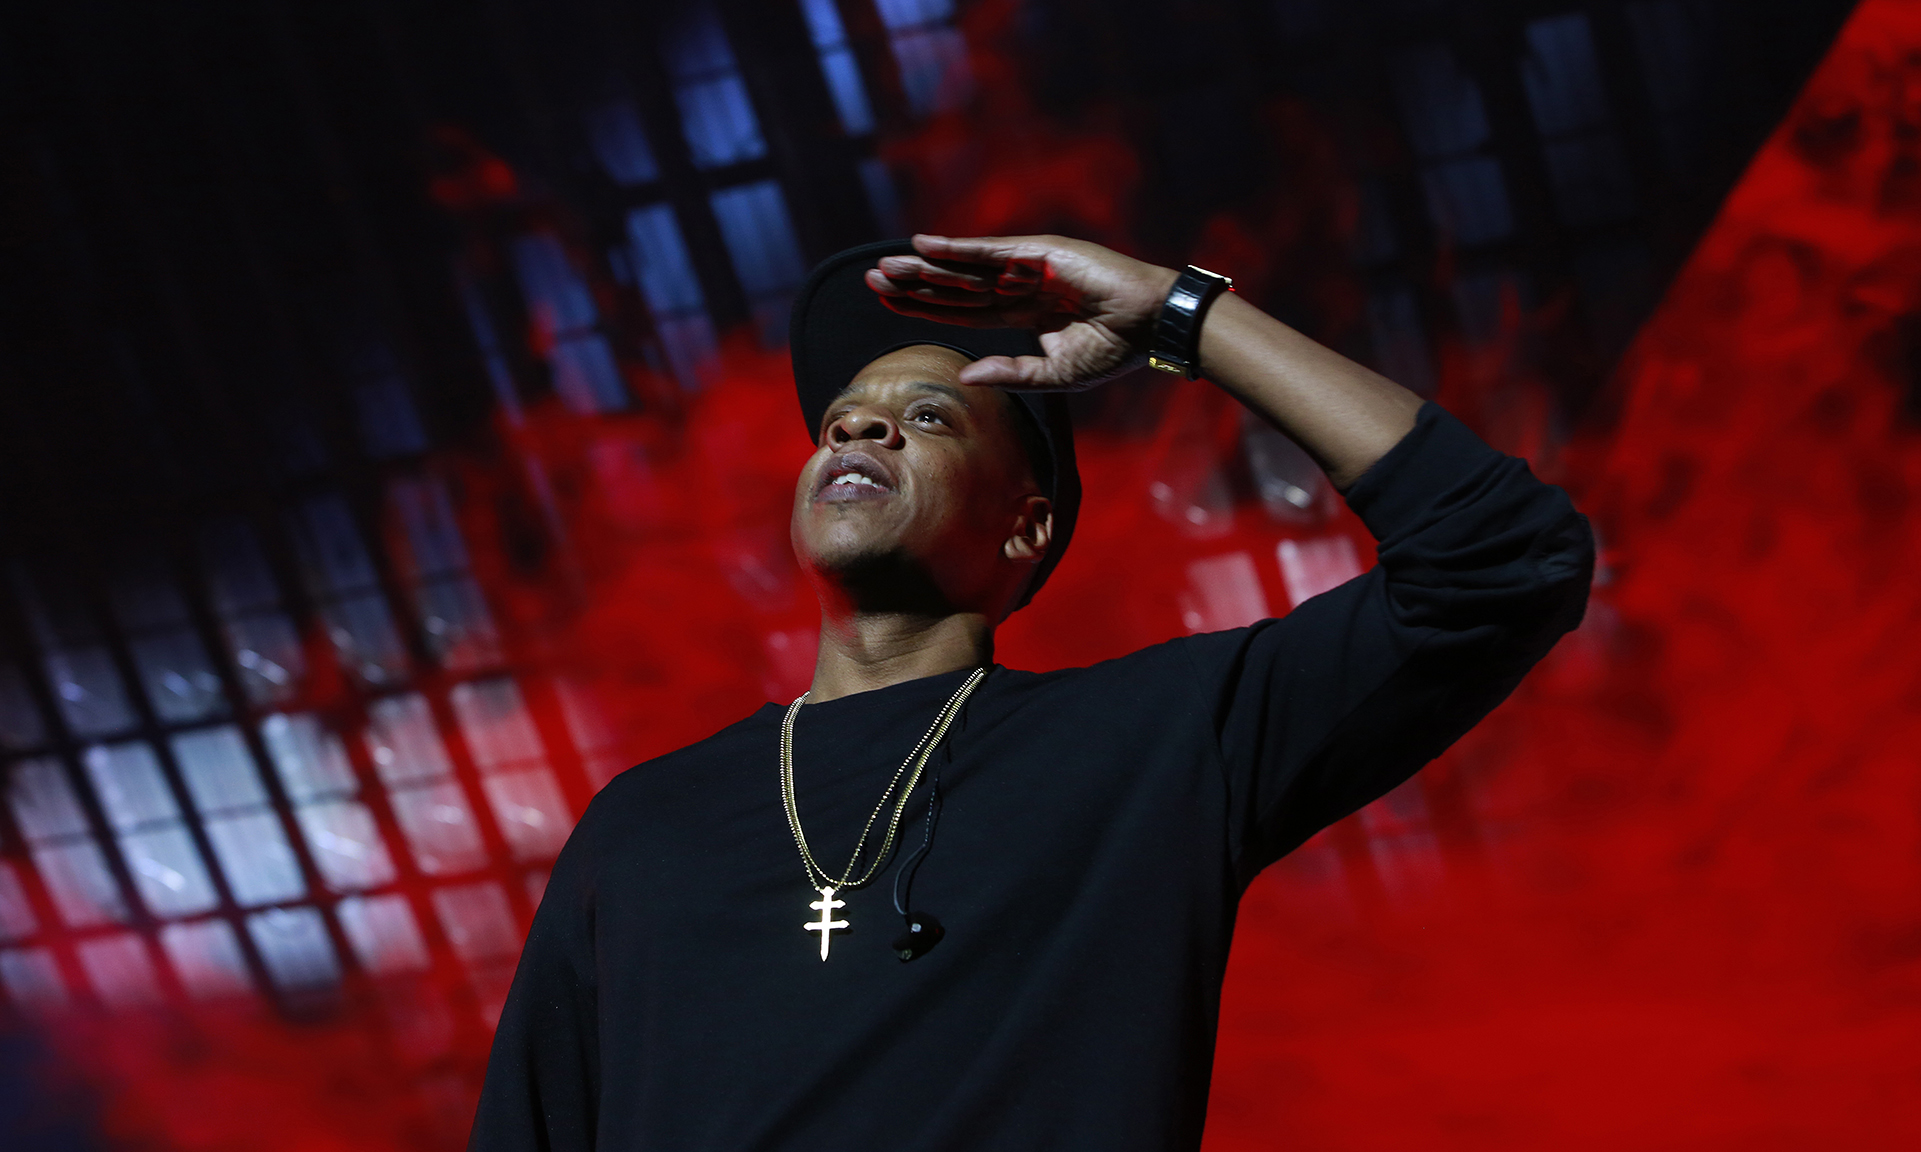 7 Cannabis-Related Jay-Z Lyrics That We Can All Feel